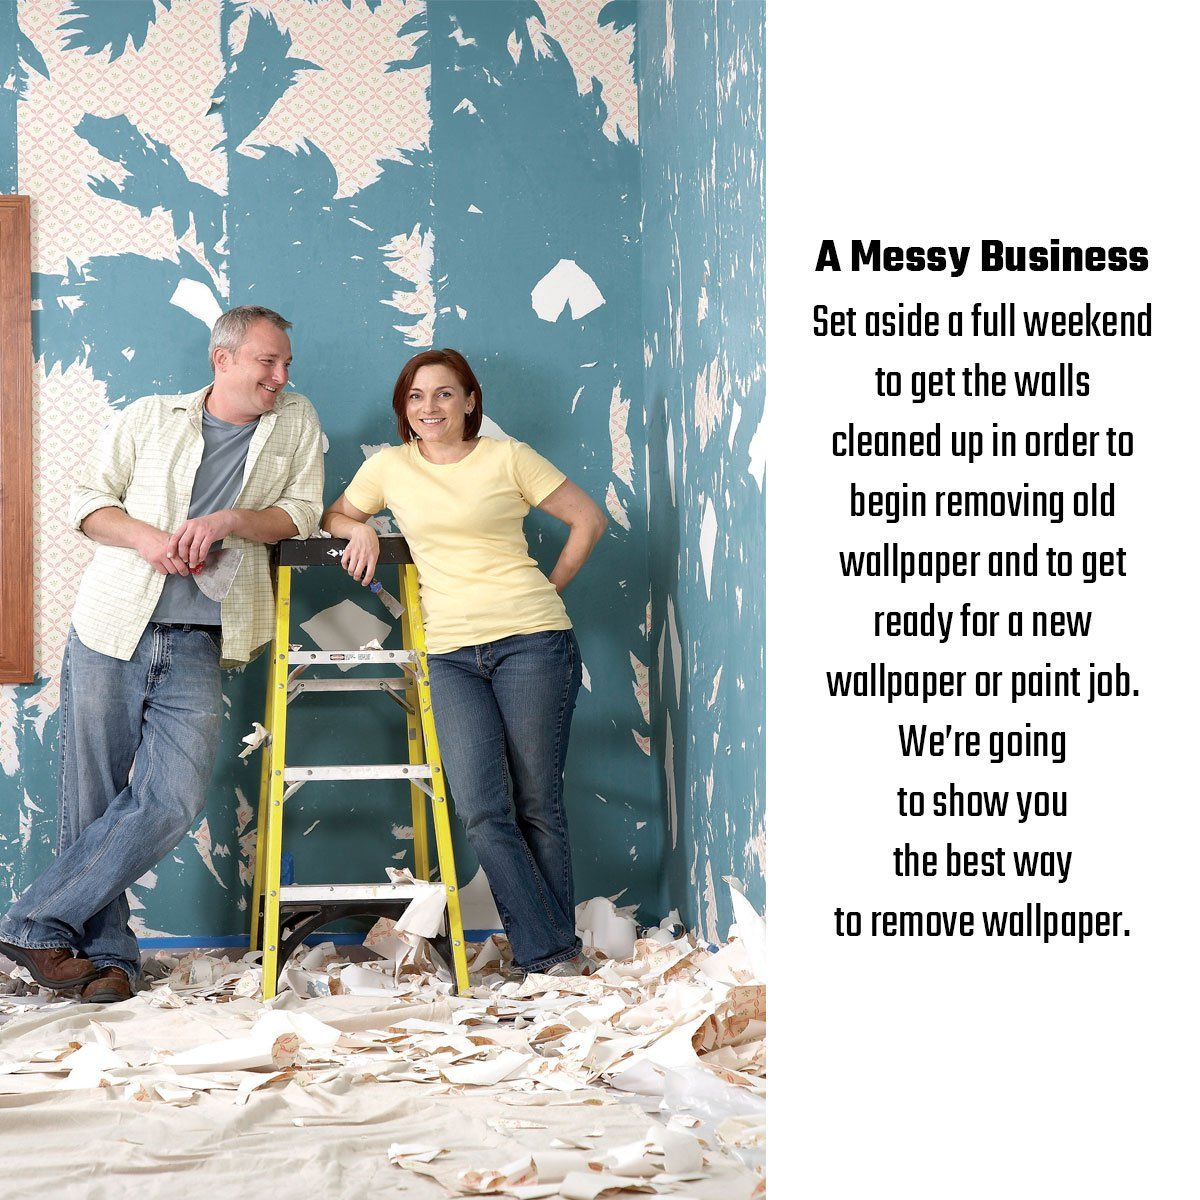 How To Remove Wallpaper Removing old wallpaper, Old